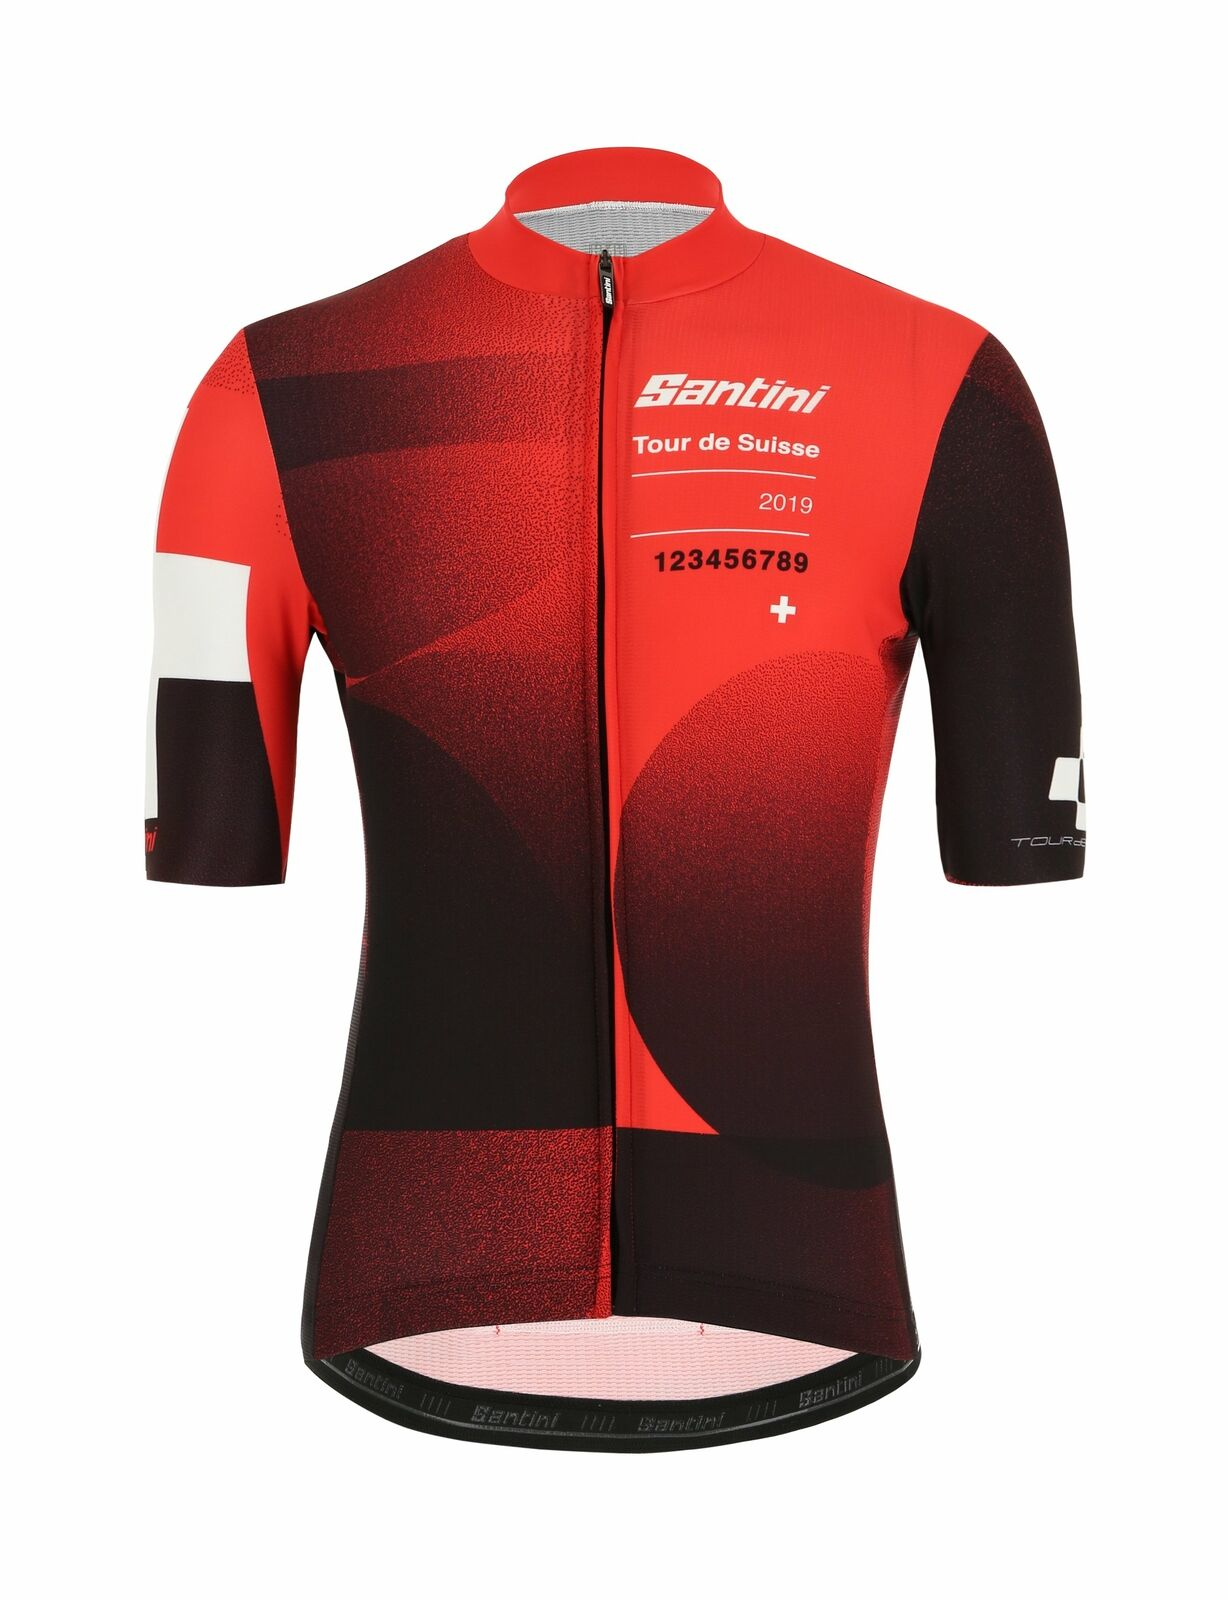 2019 Tour de Suisse Cross  Cycling Jersey by Santini  presenting all the latest high street fashion